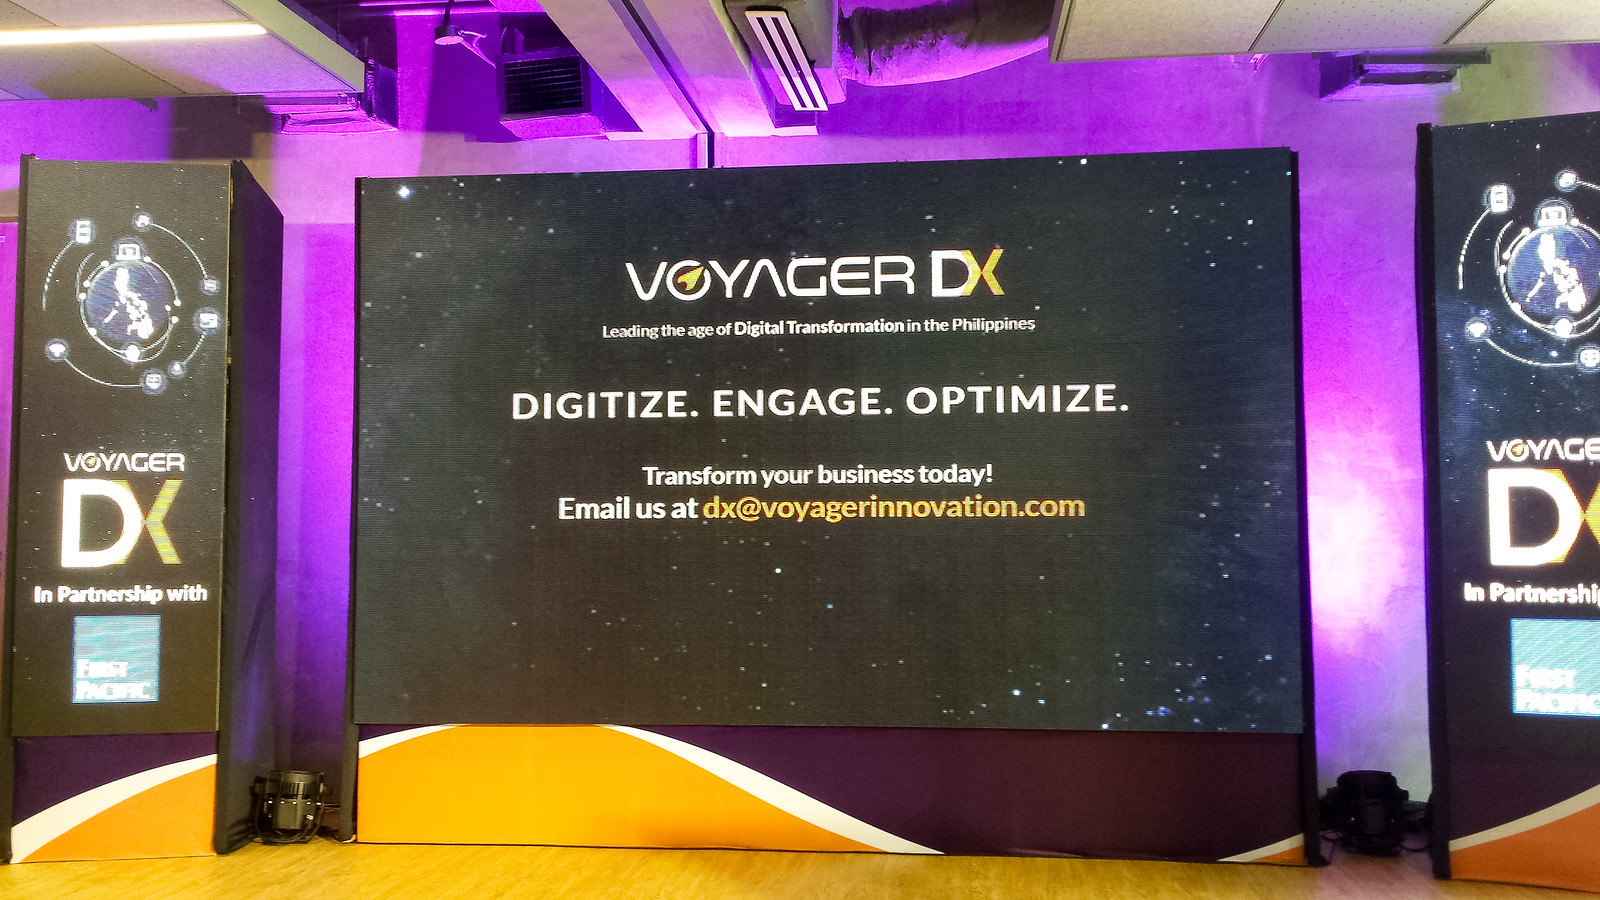 Voyager DX - Leading the age of Digital Transformation in the Philippines